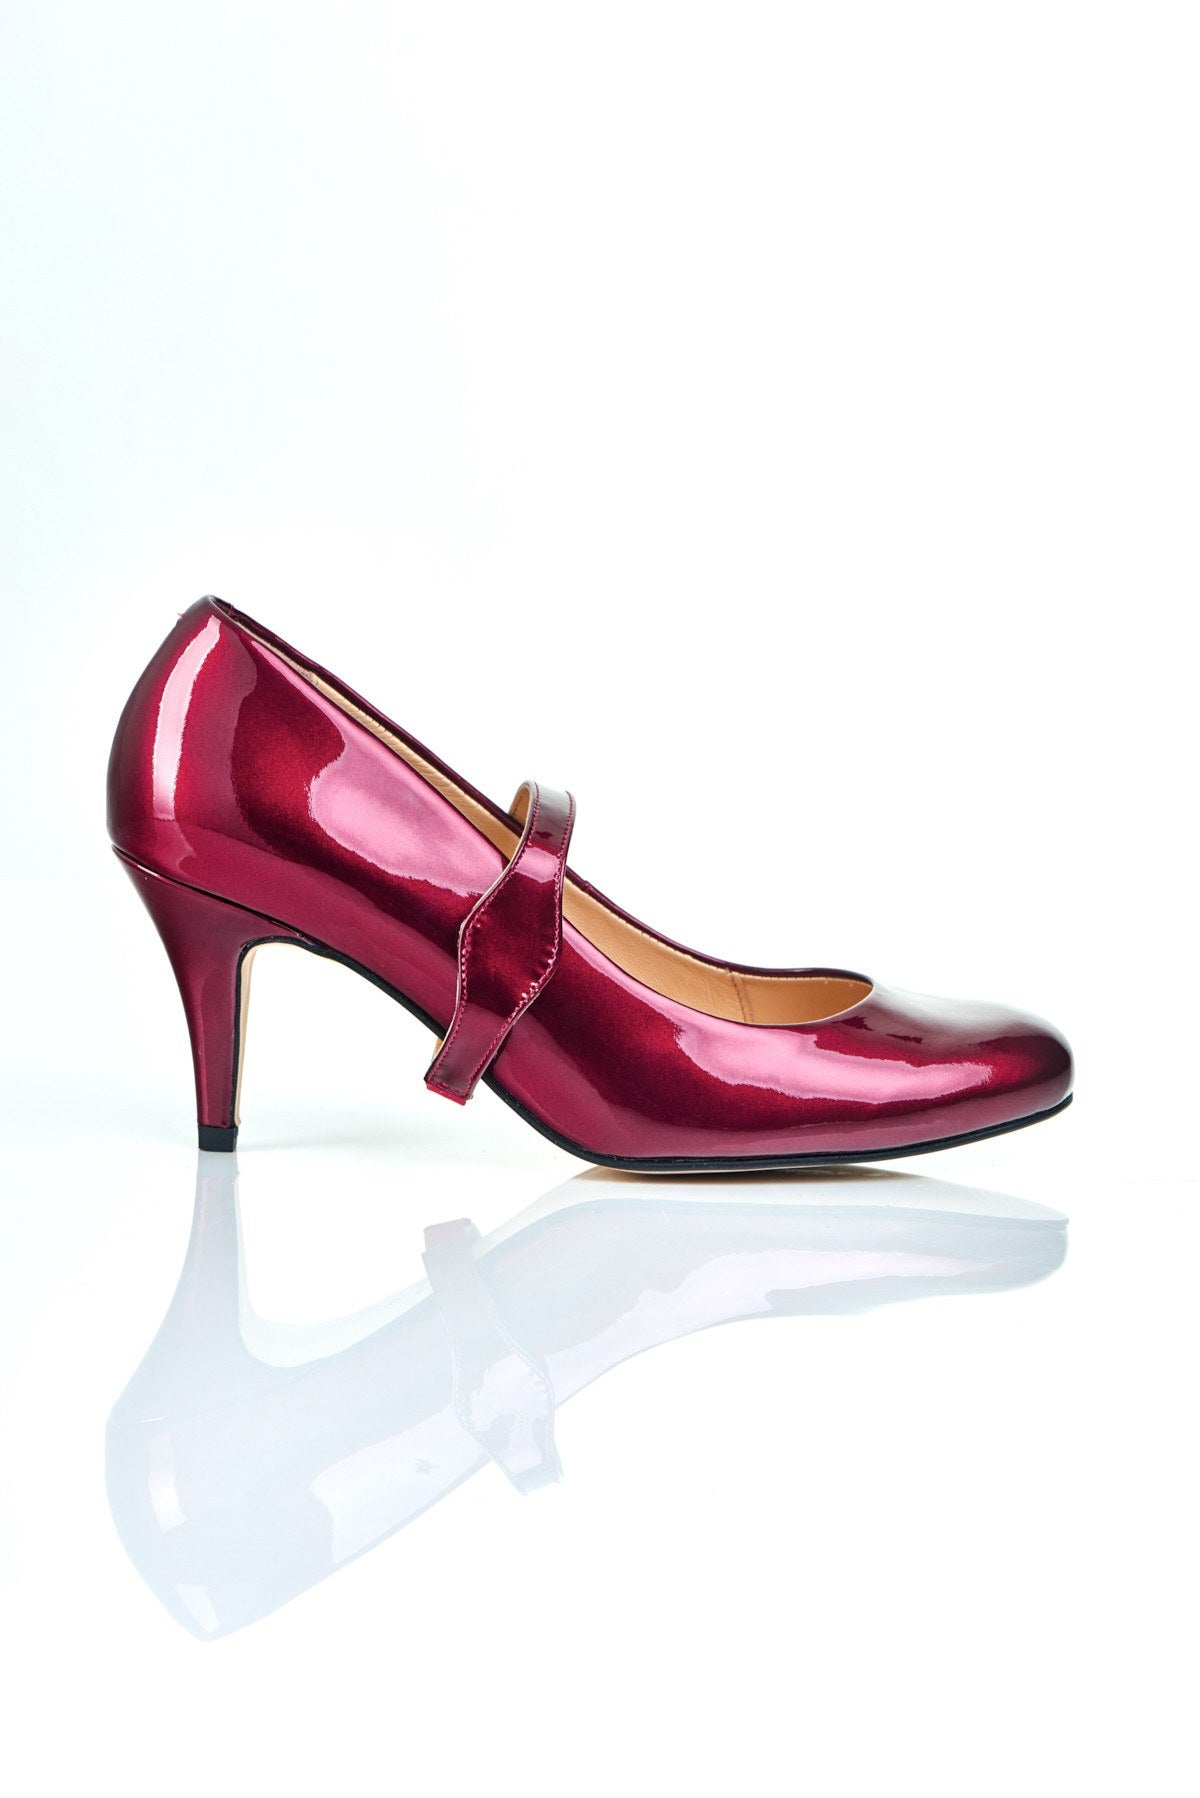 Take My Lead - 18 Hour Heels - Mulberry Leather - Shoes by Shaherazad